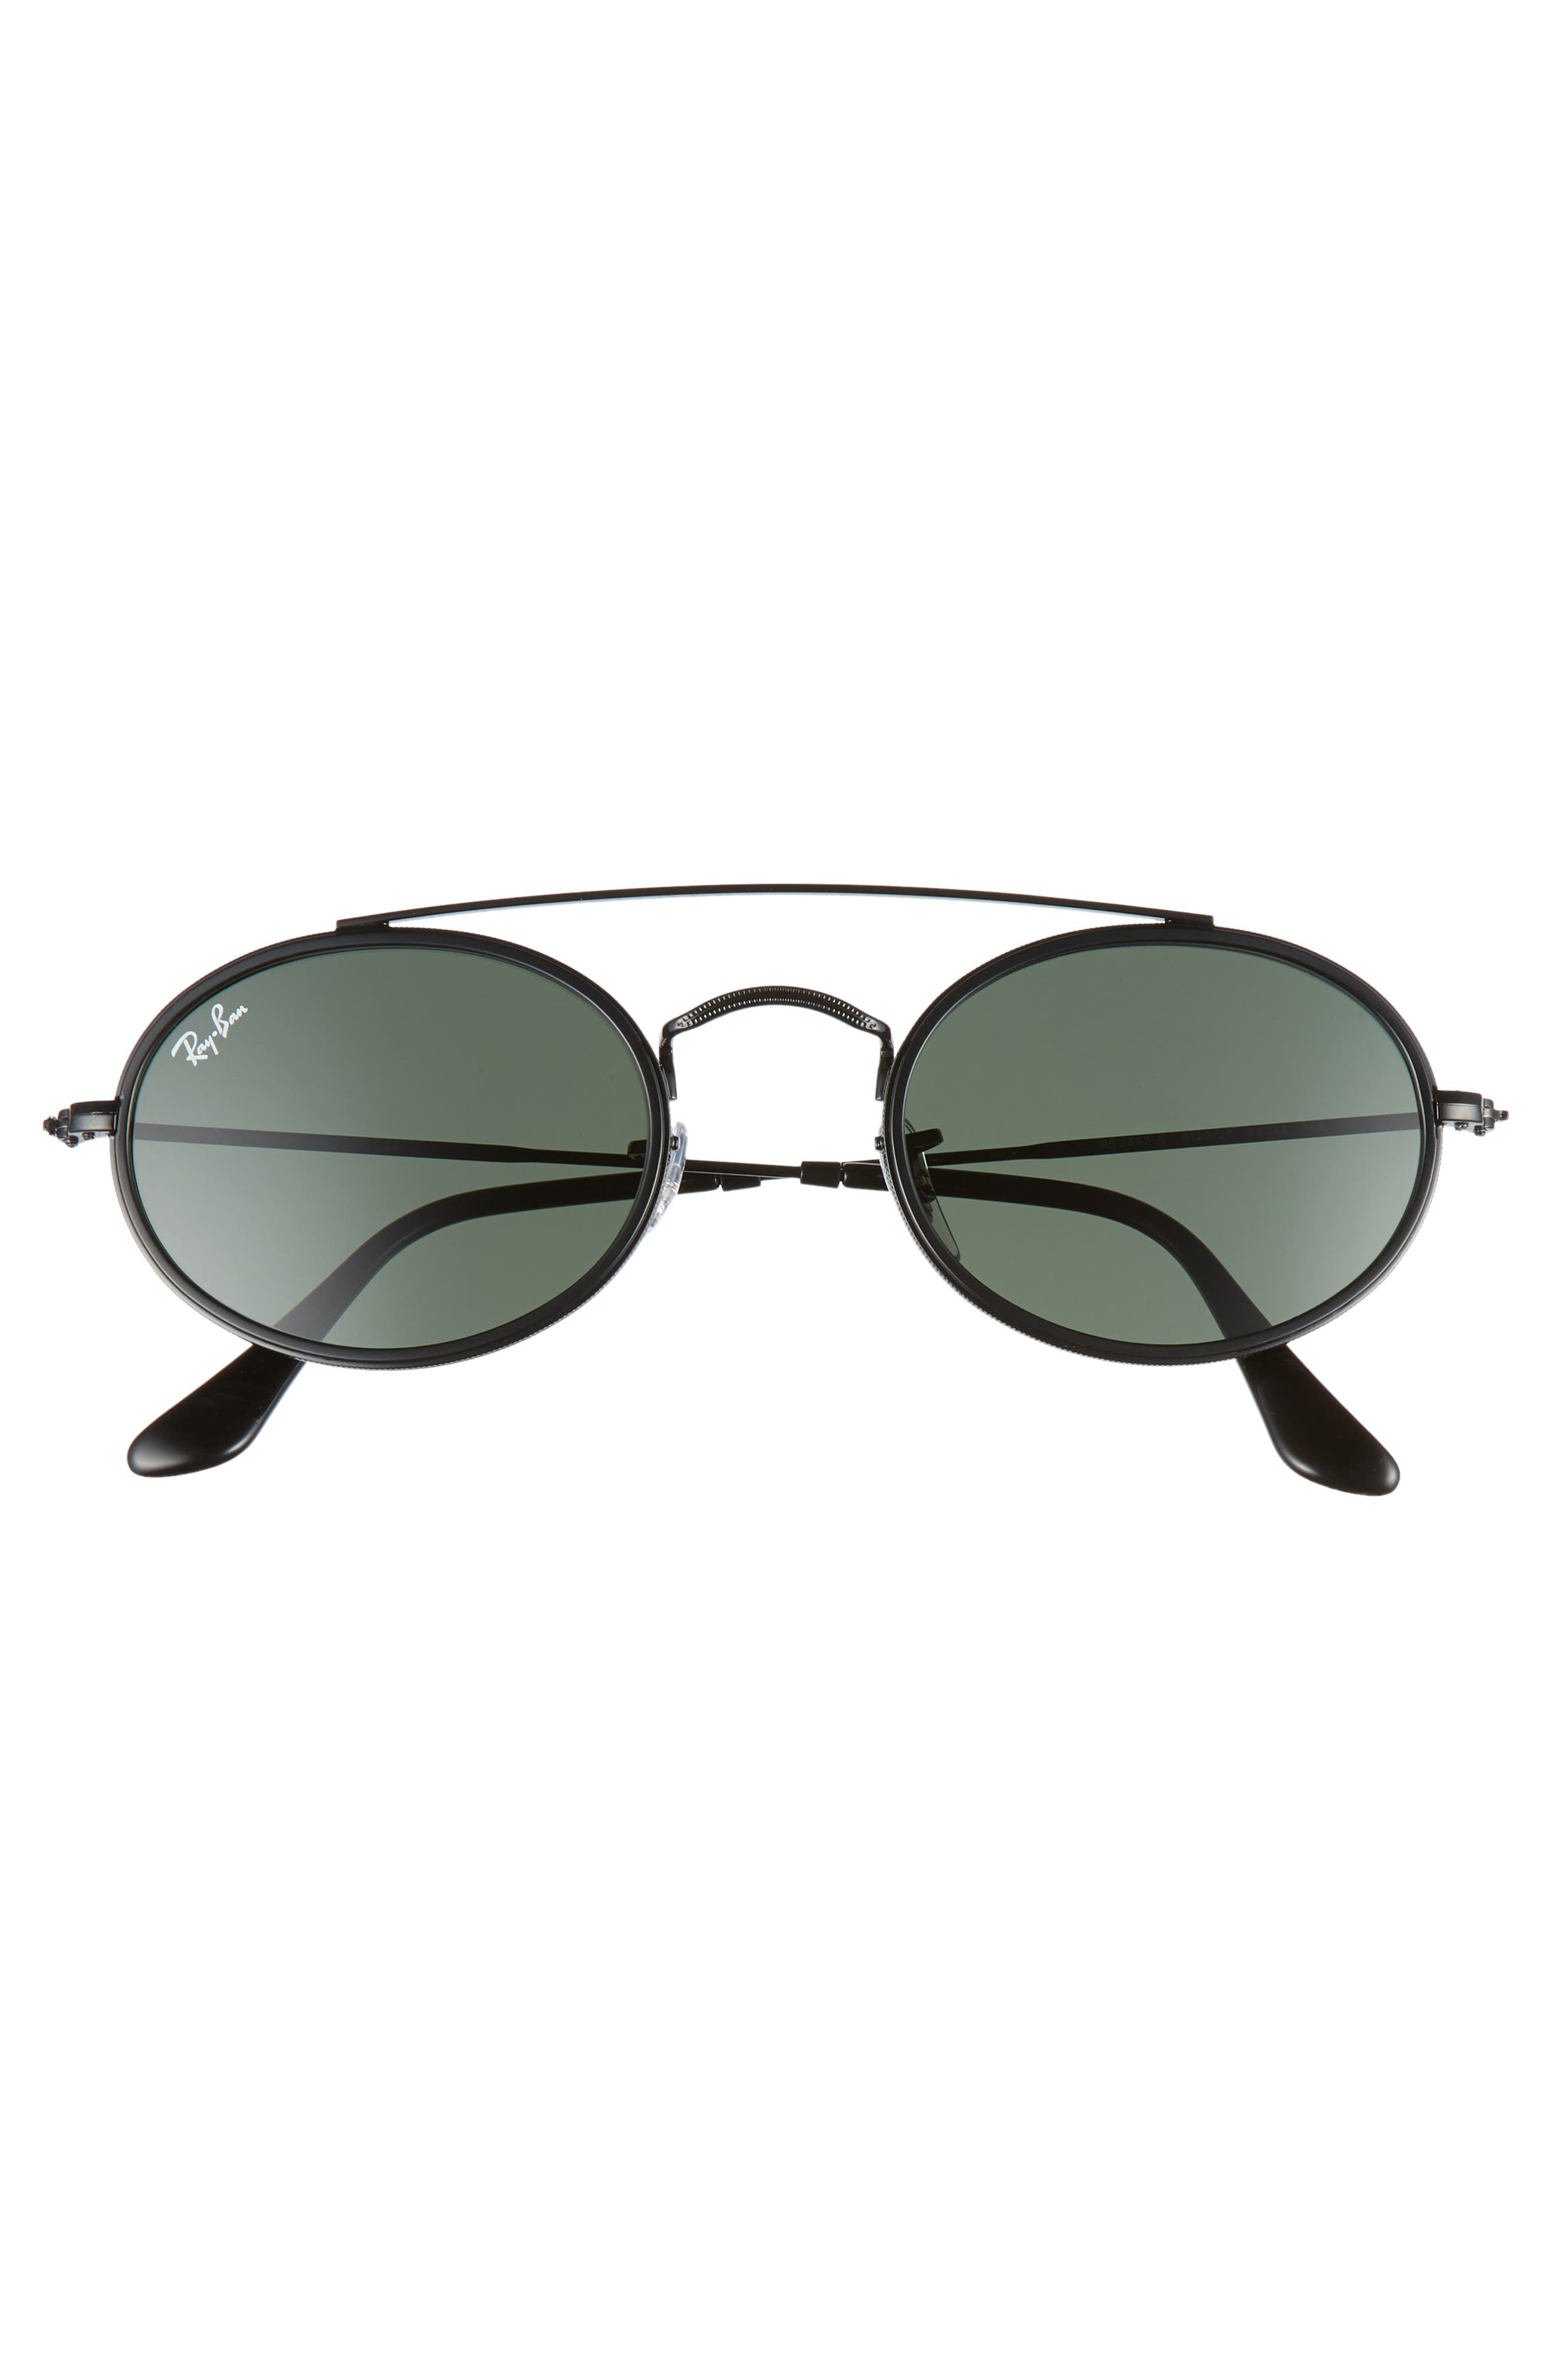 RAY-BAN,                             Elite 52mm Oval Sunglasses,                             Alternate thumbnail 3, color,                             GOLD/ GREEN SOLID